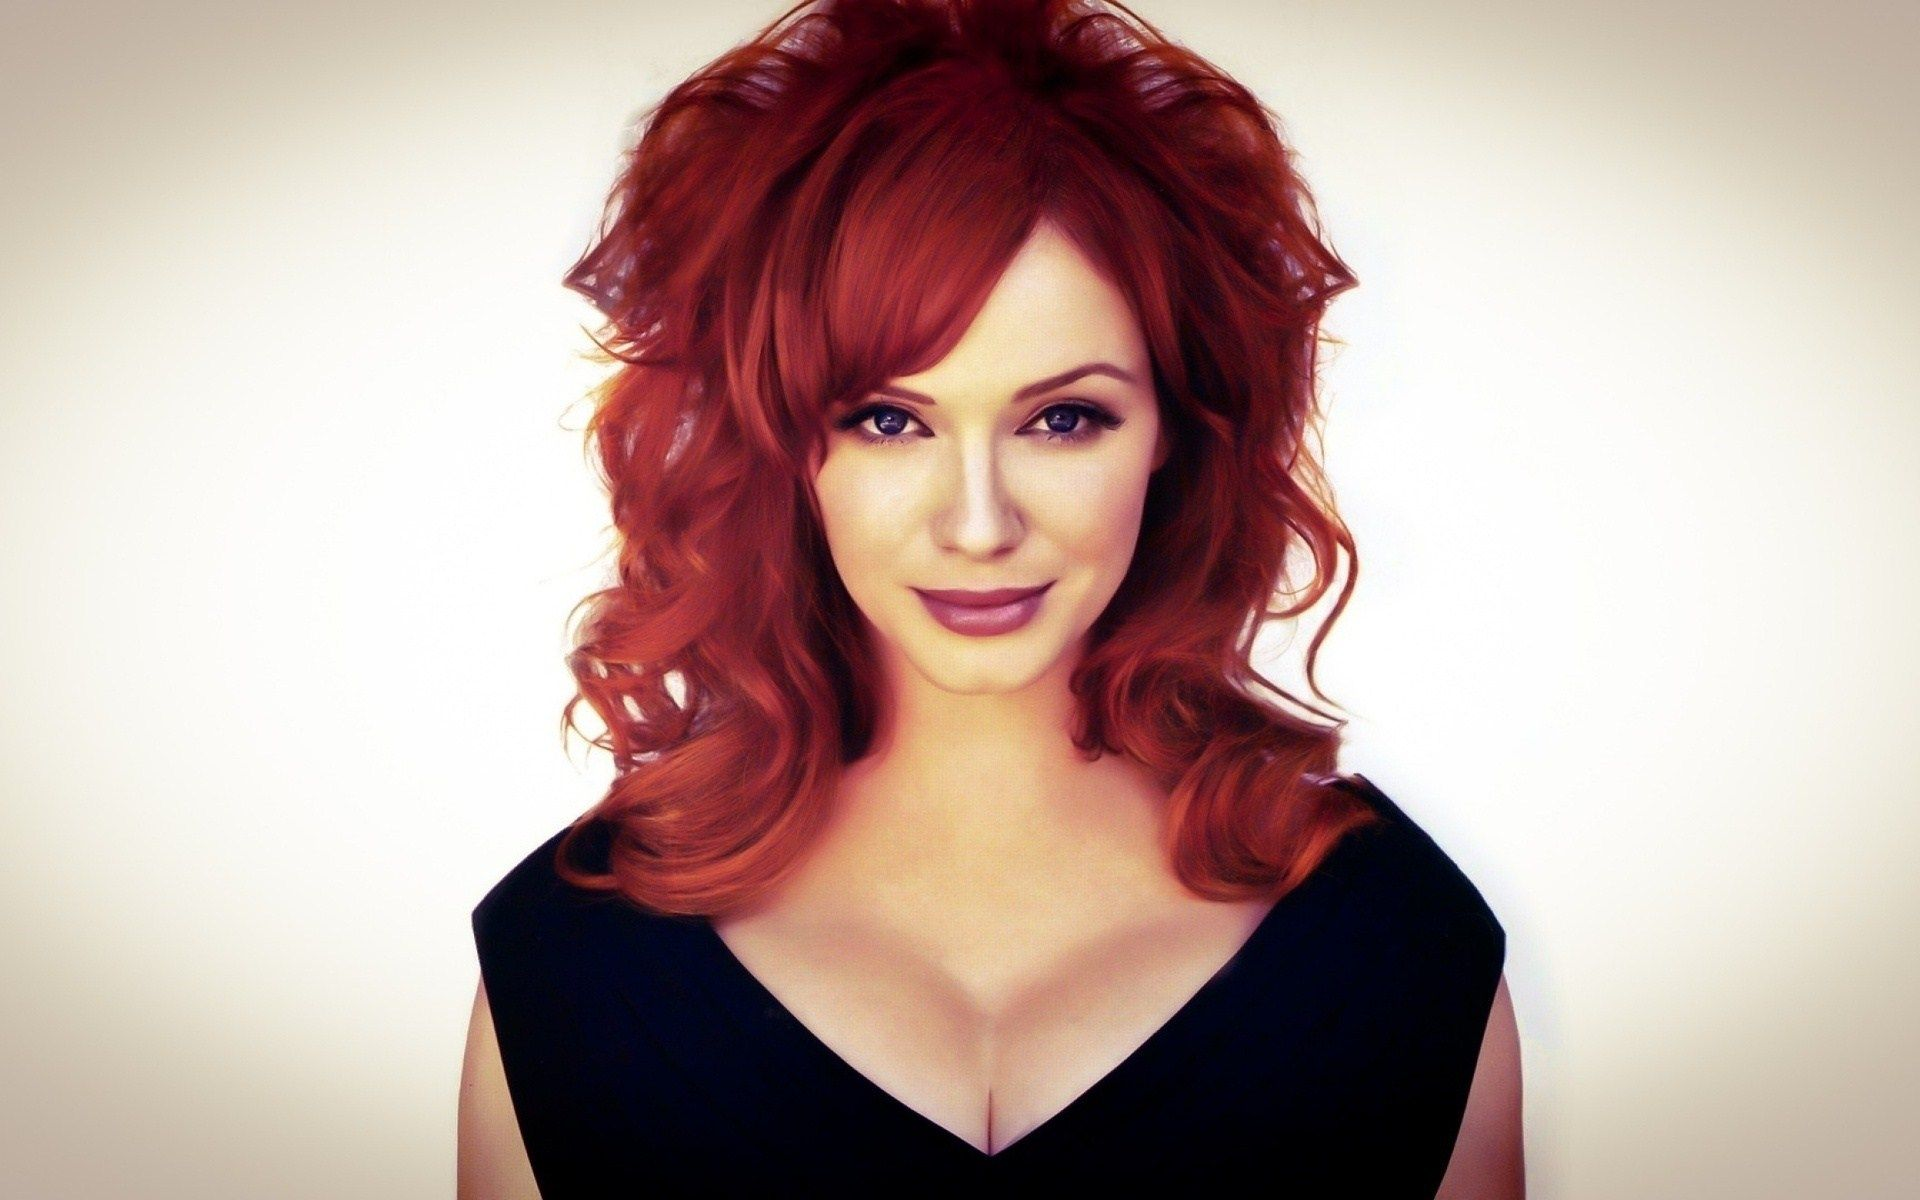 Muzzie reccomend Singer actress redhead